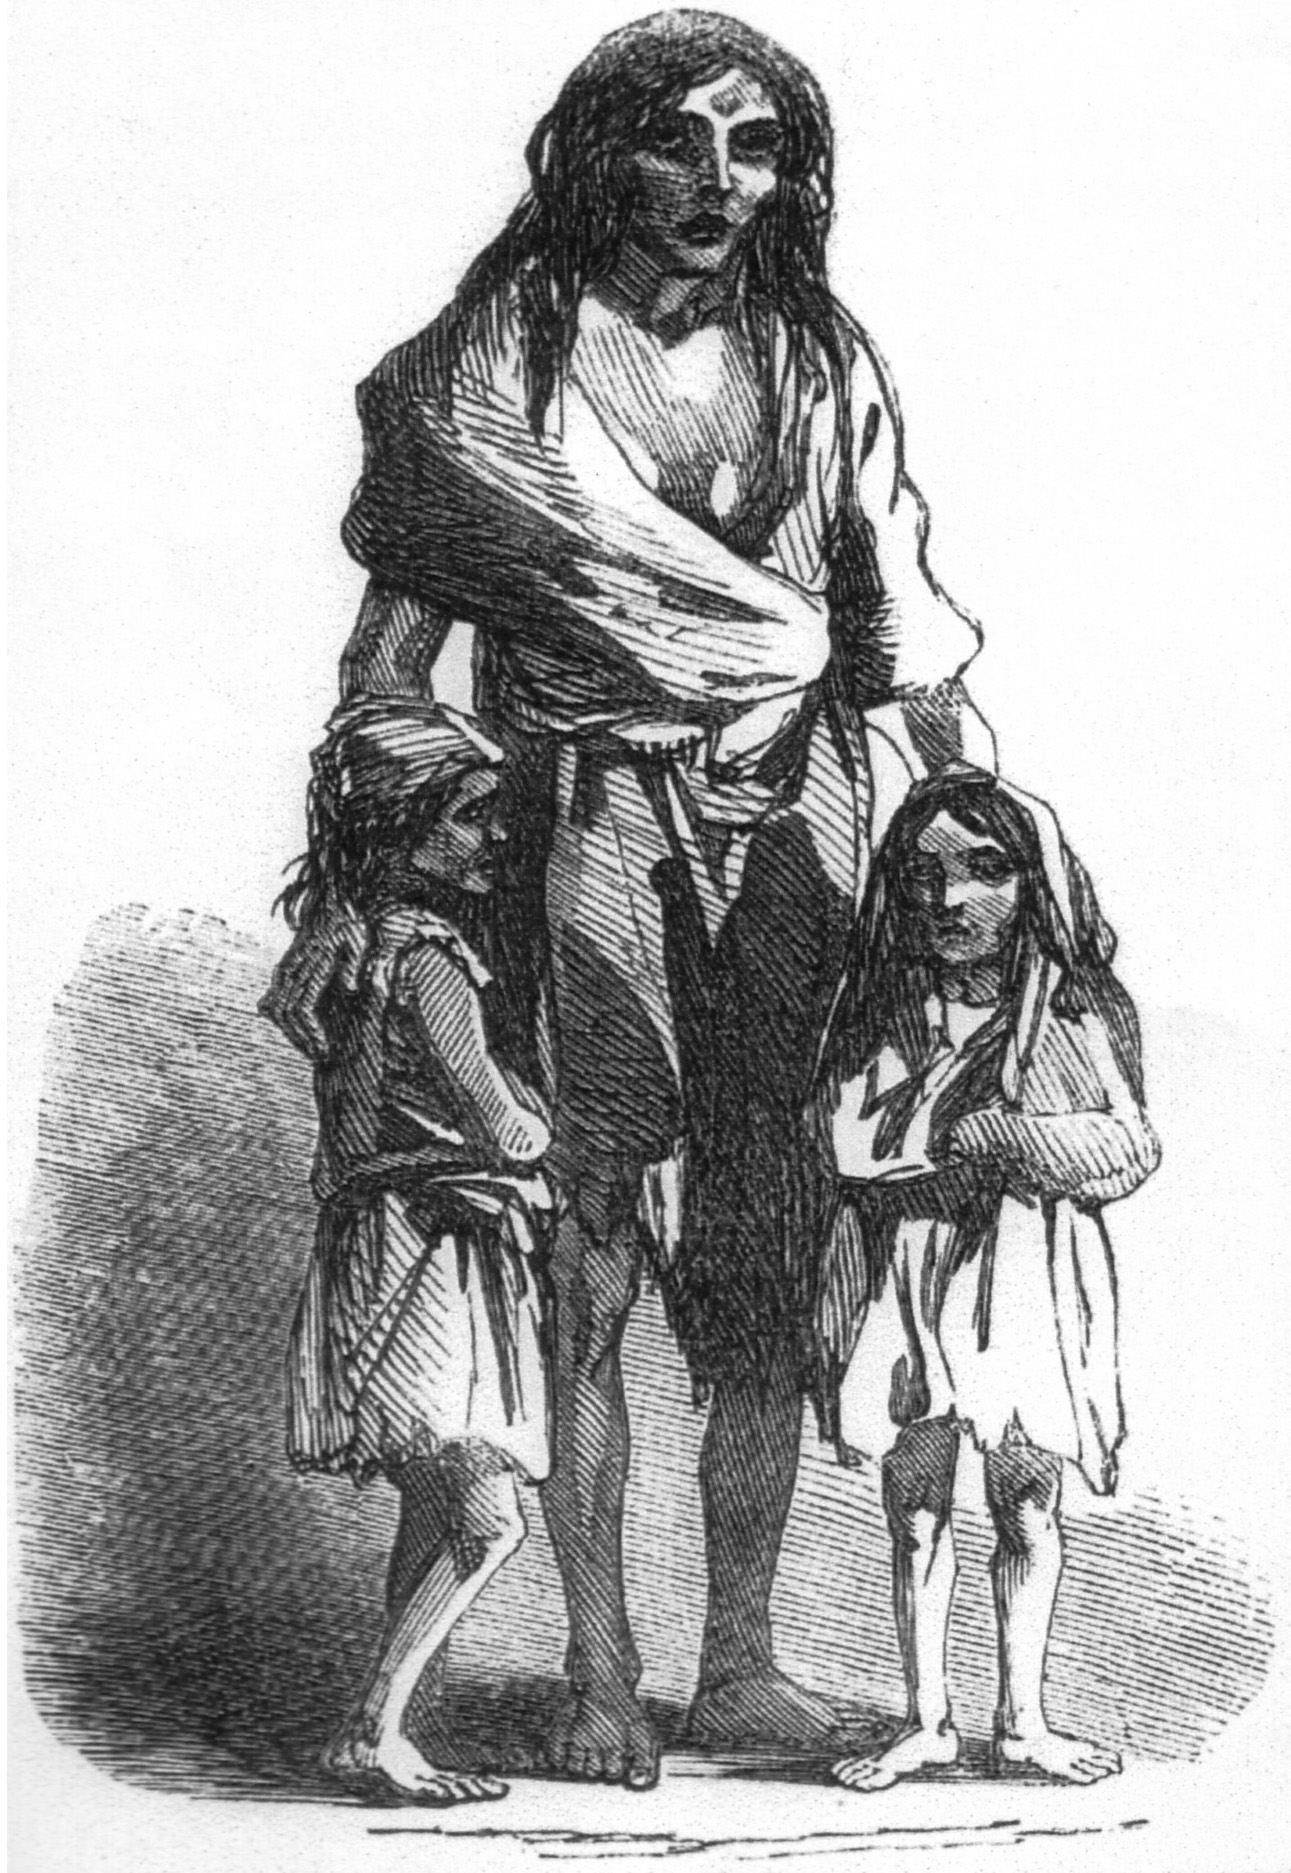 Bridget O'Donnel and her starving children, 1849, Illustrated London News